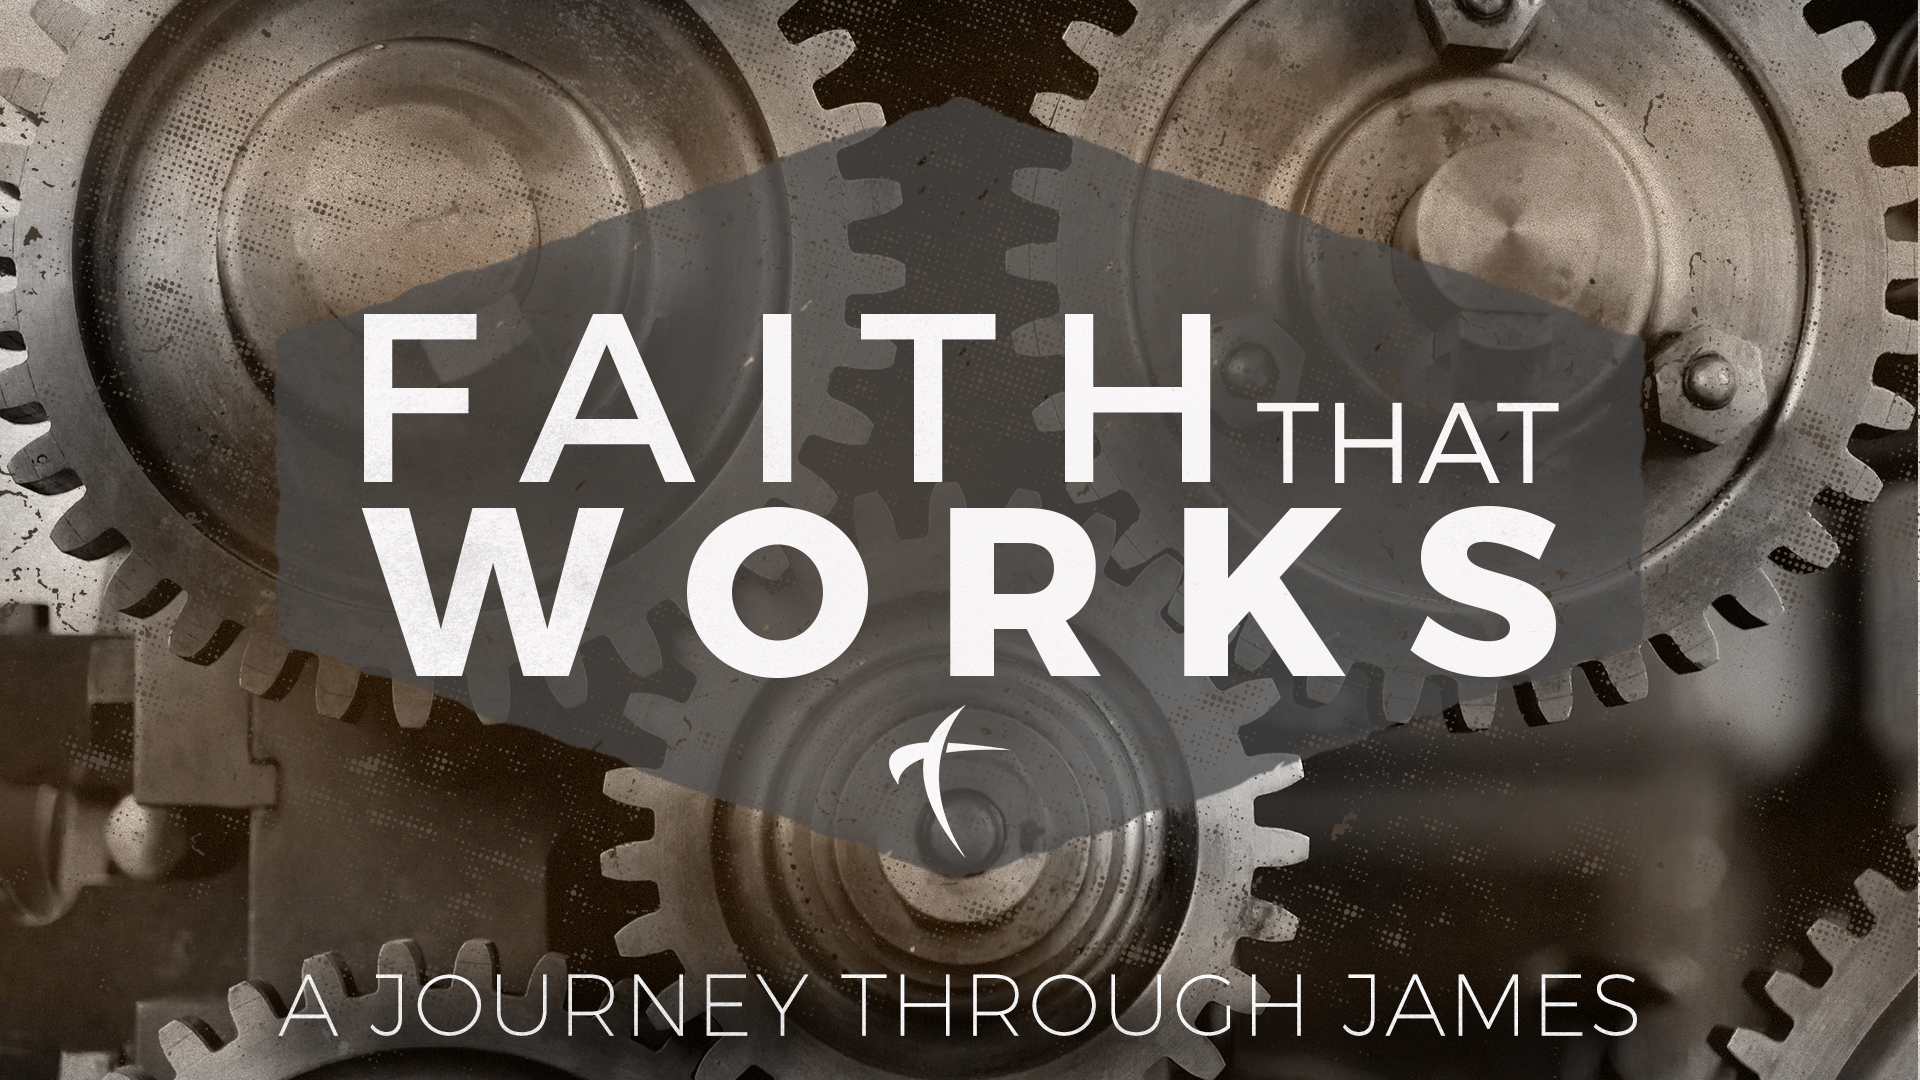 FaiththatWorks1.jpg